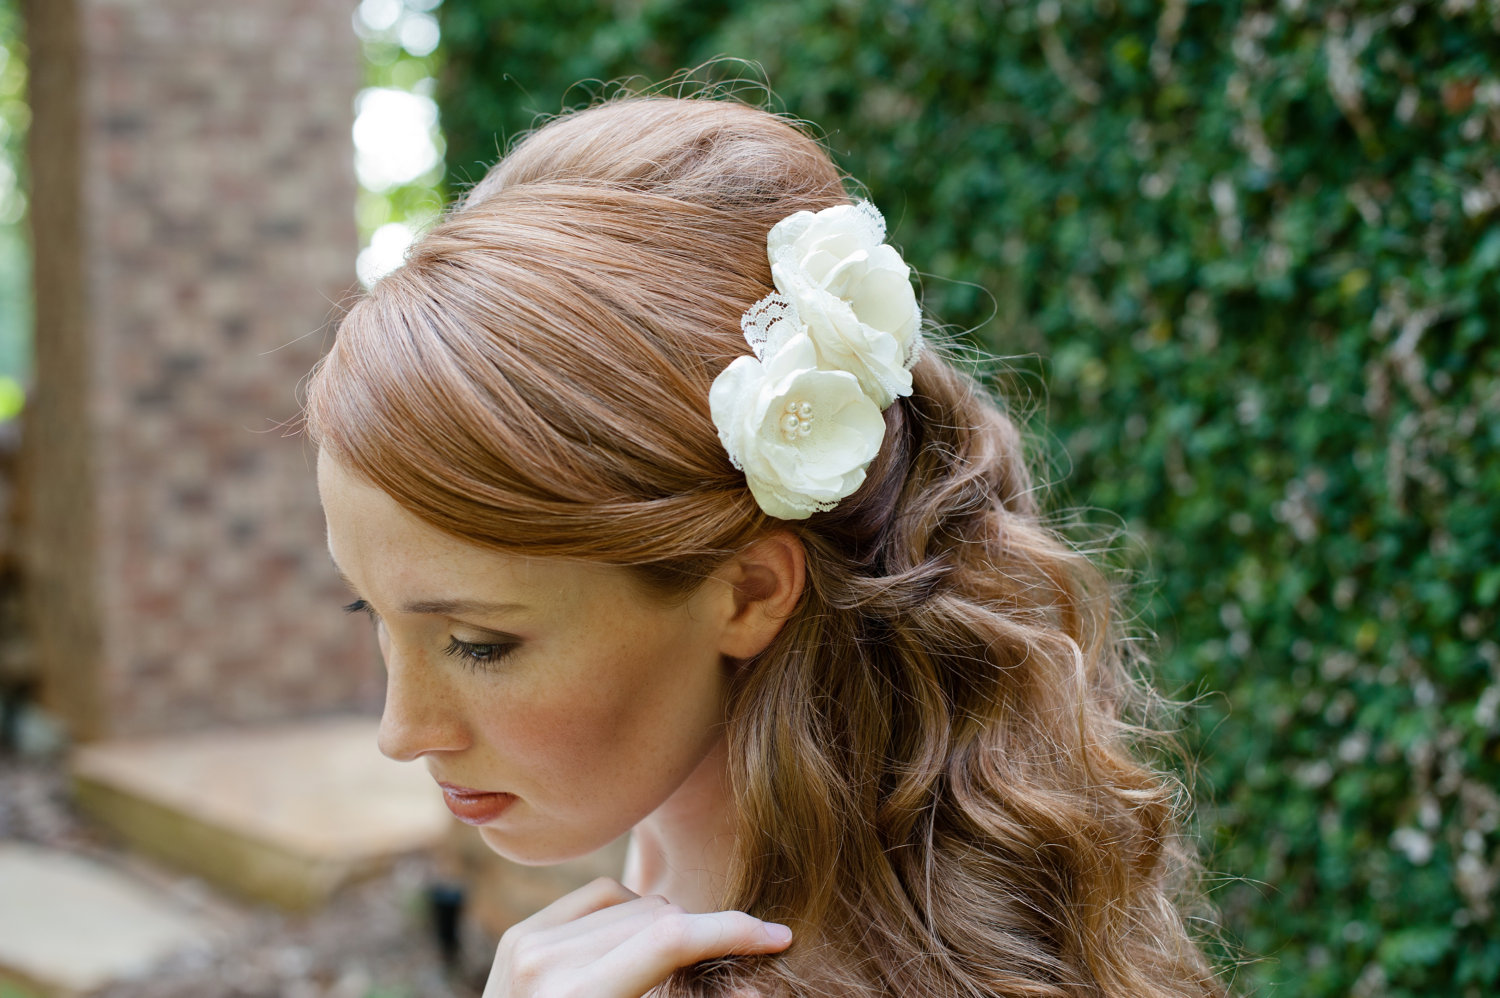 Romantic-wedding-hair-flowers-all-down-bridal-hairstyle.original